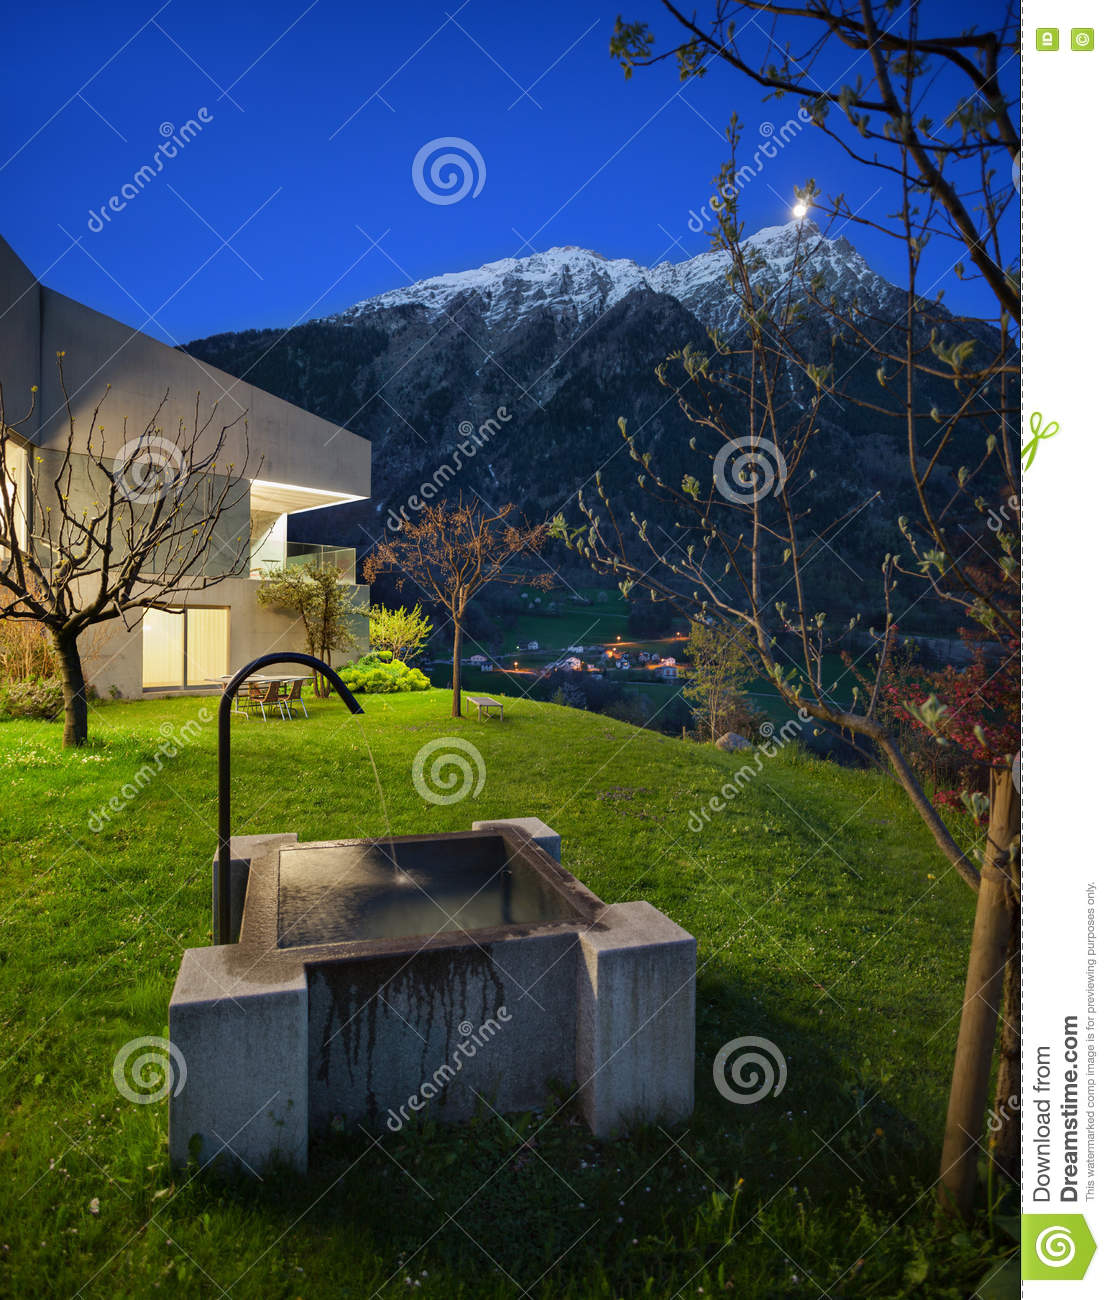 Concrete house with stone fountain